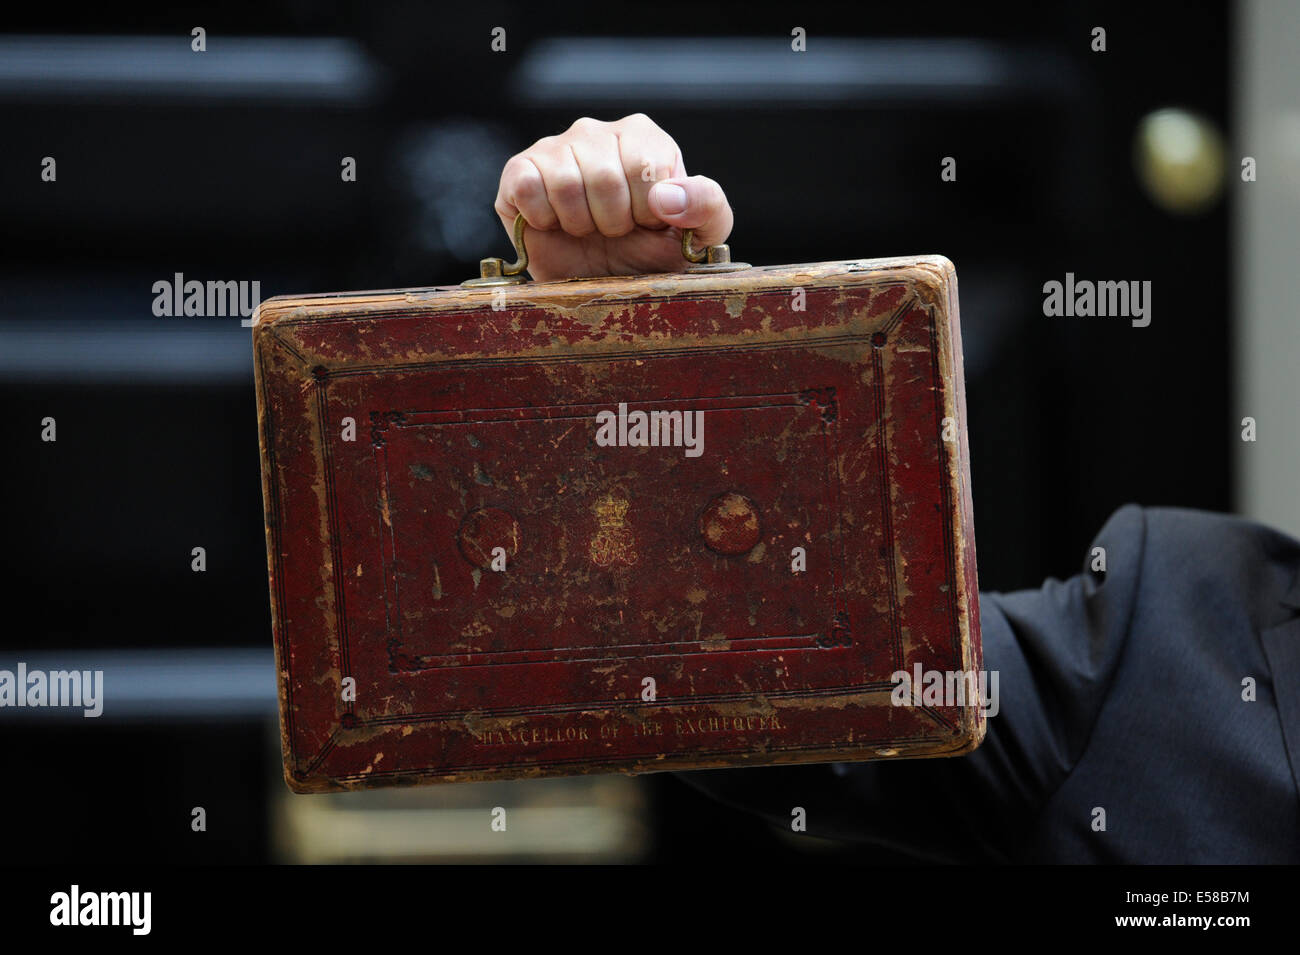 This 2009 pictured red briefcase is known as the 'budget box' or 'red box' and is a ministerial - Stock Image